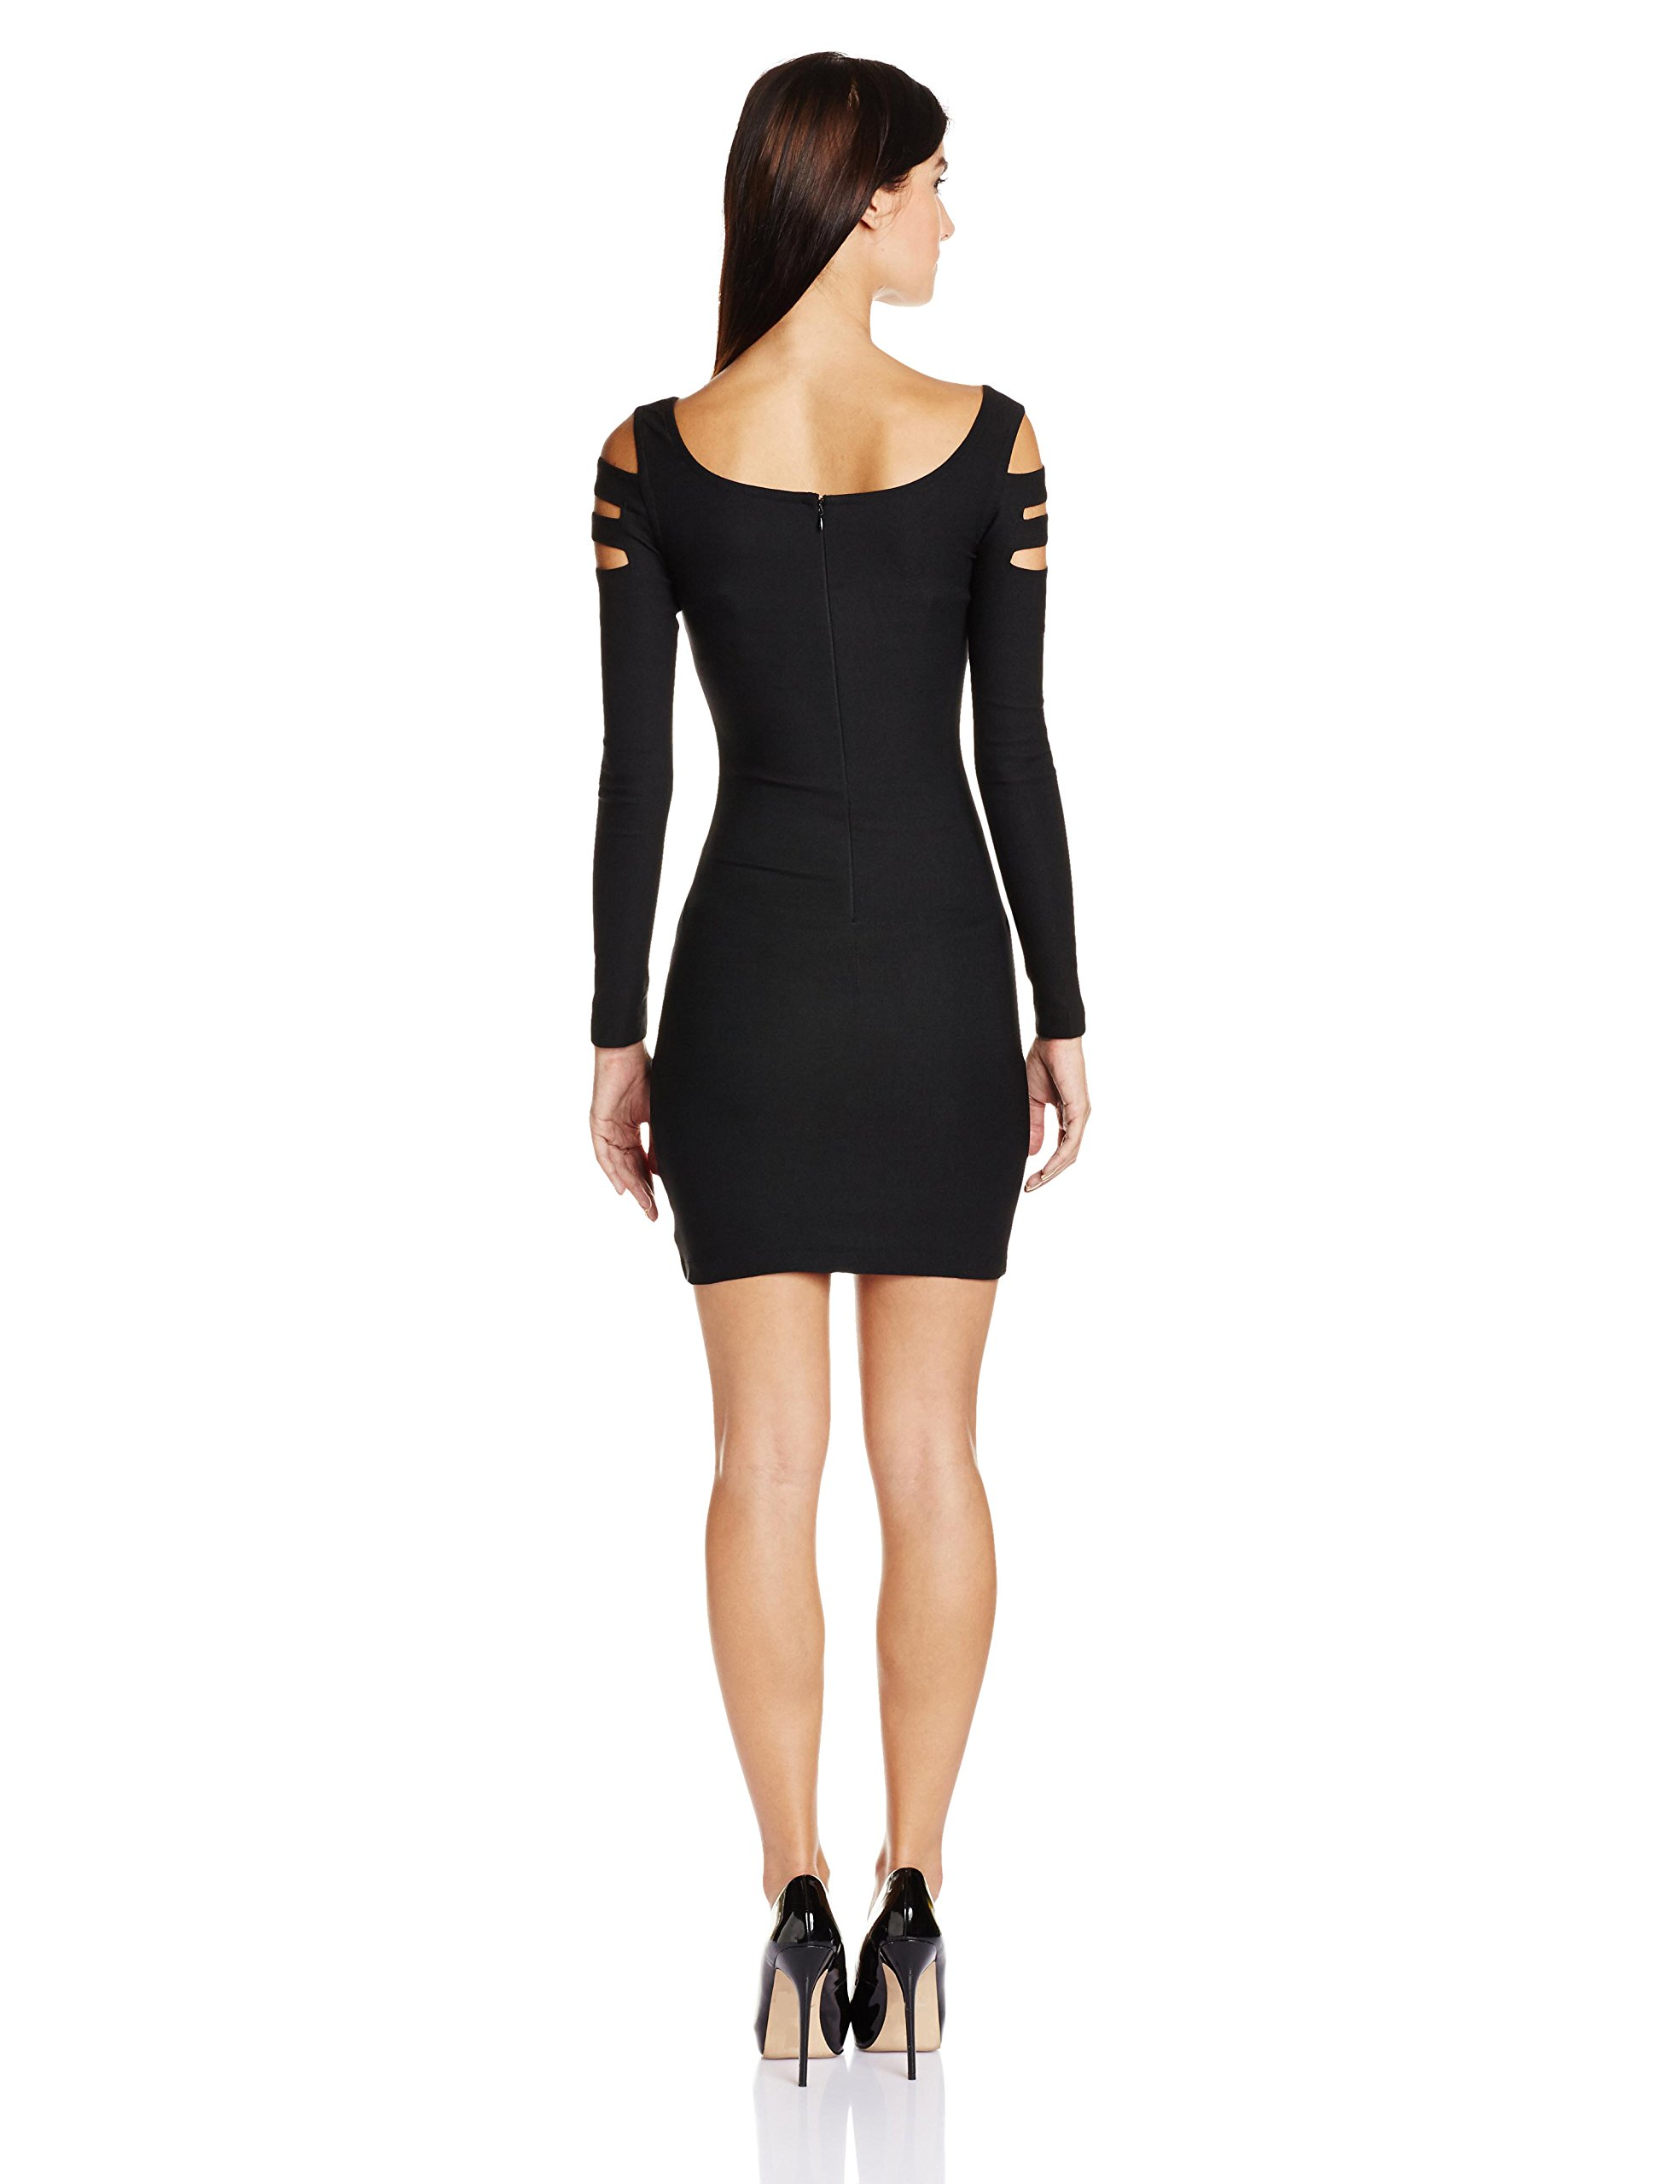 d29849173 Miss Chase Women s Polyester Bodycon Dress - Gia Designer